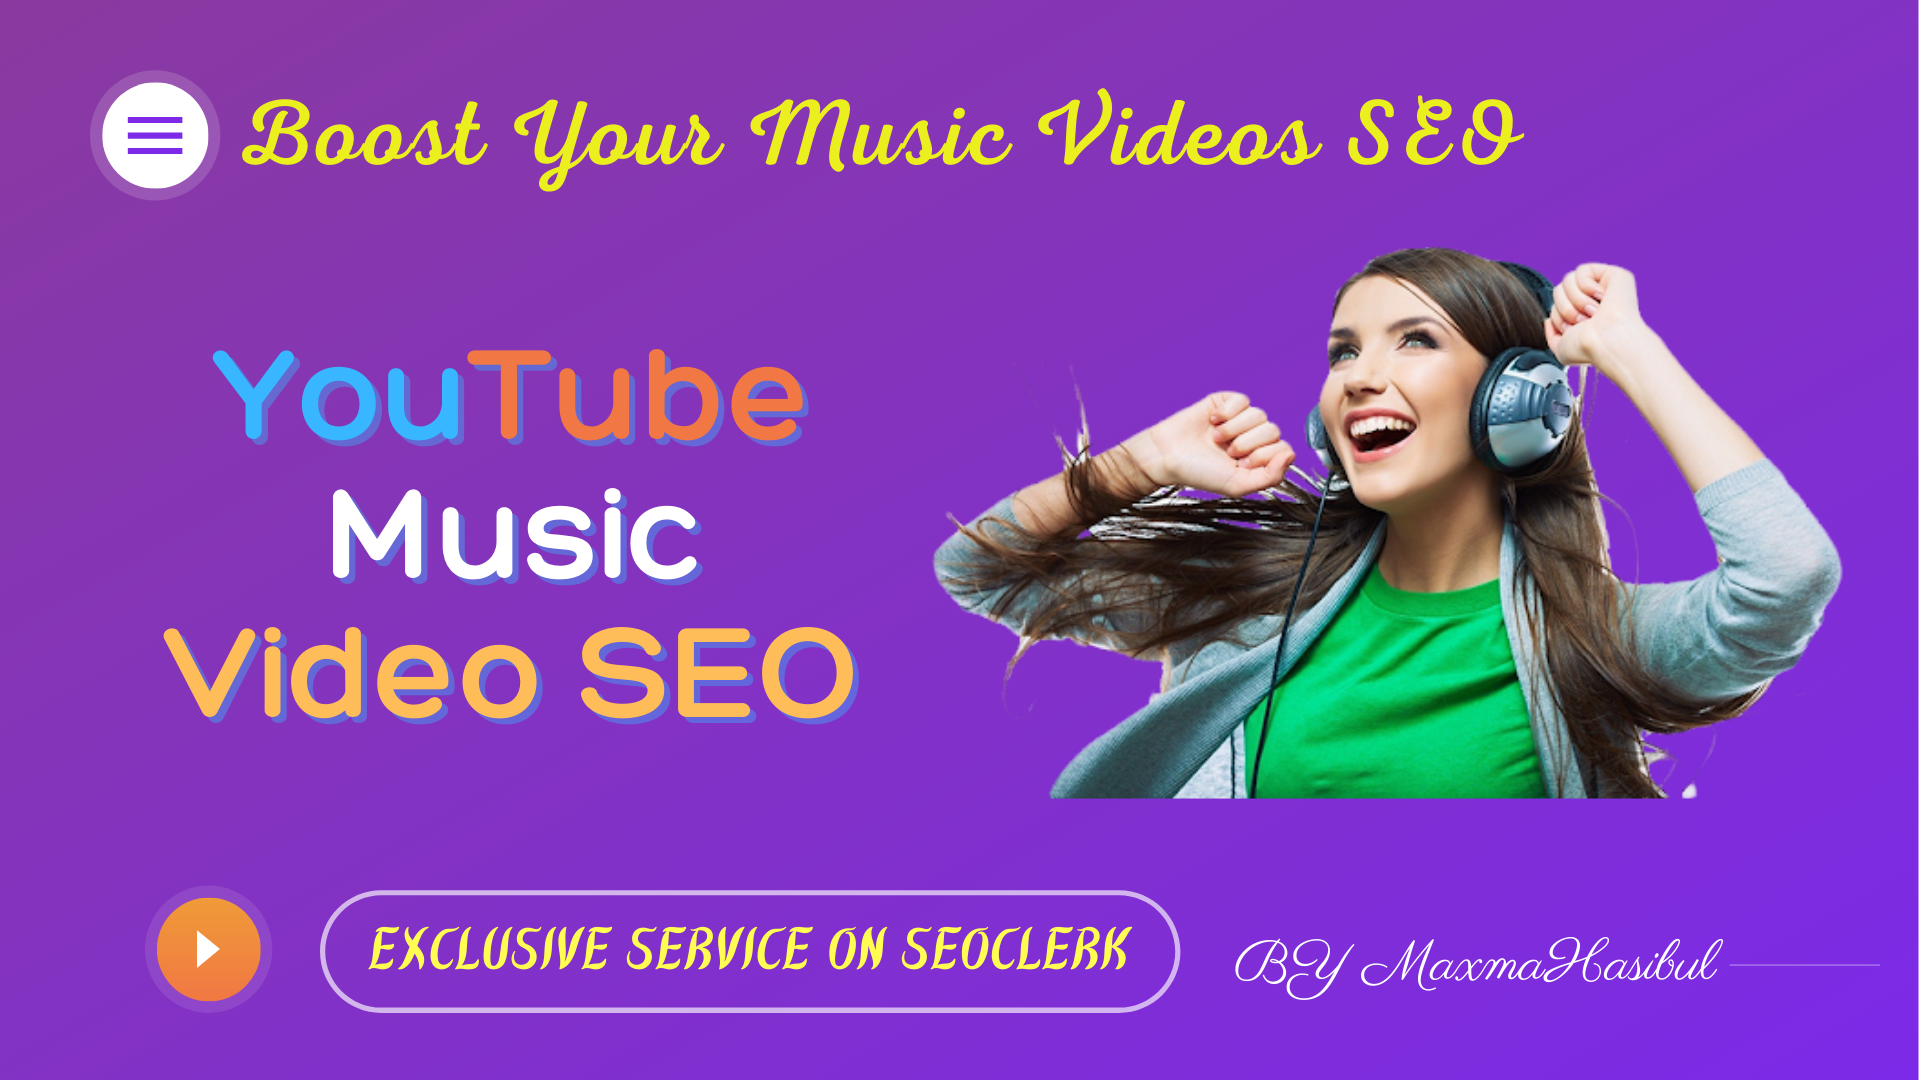 Best Music Video SEO & Promotion Pack - With Do MASSIVE Video Organic Promotion with SEO Embeds